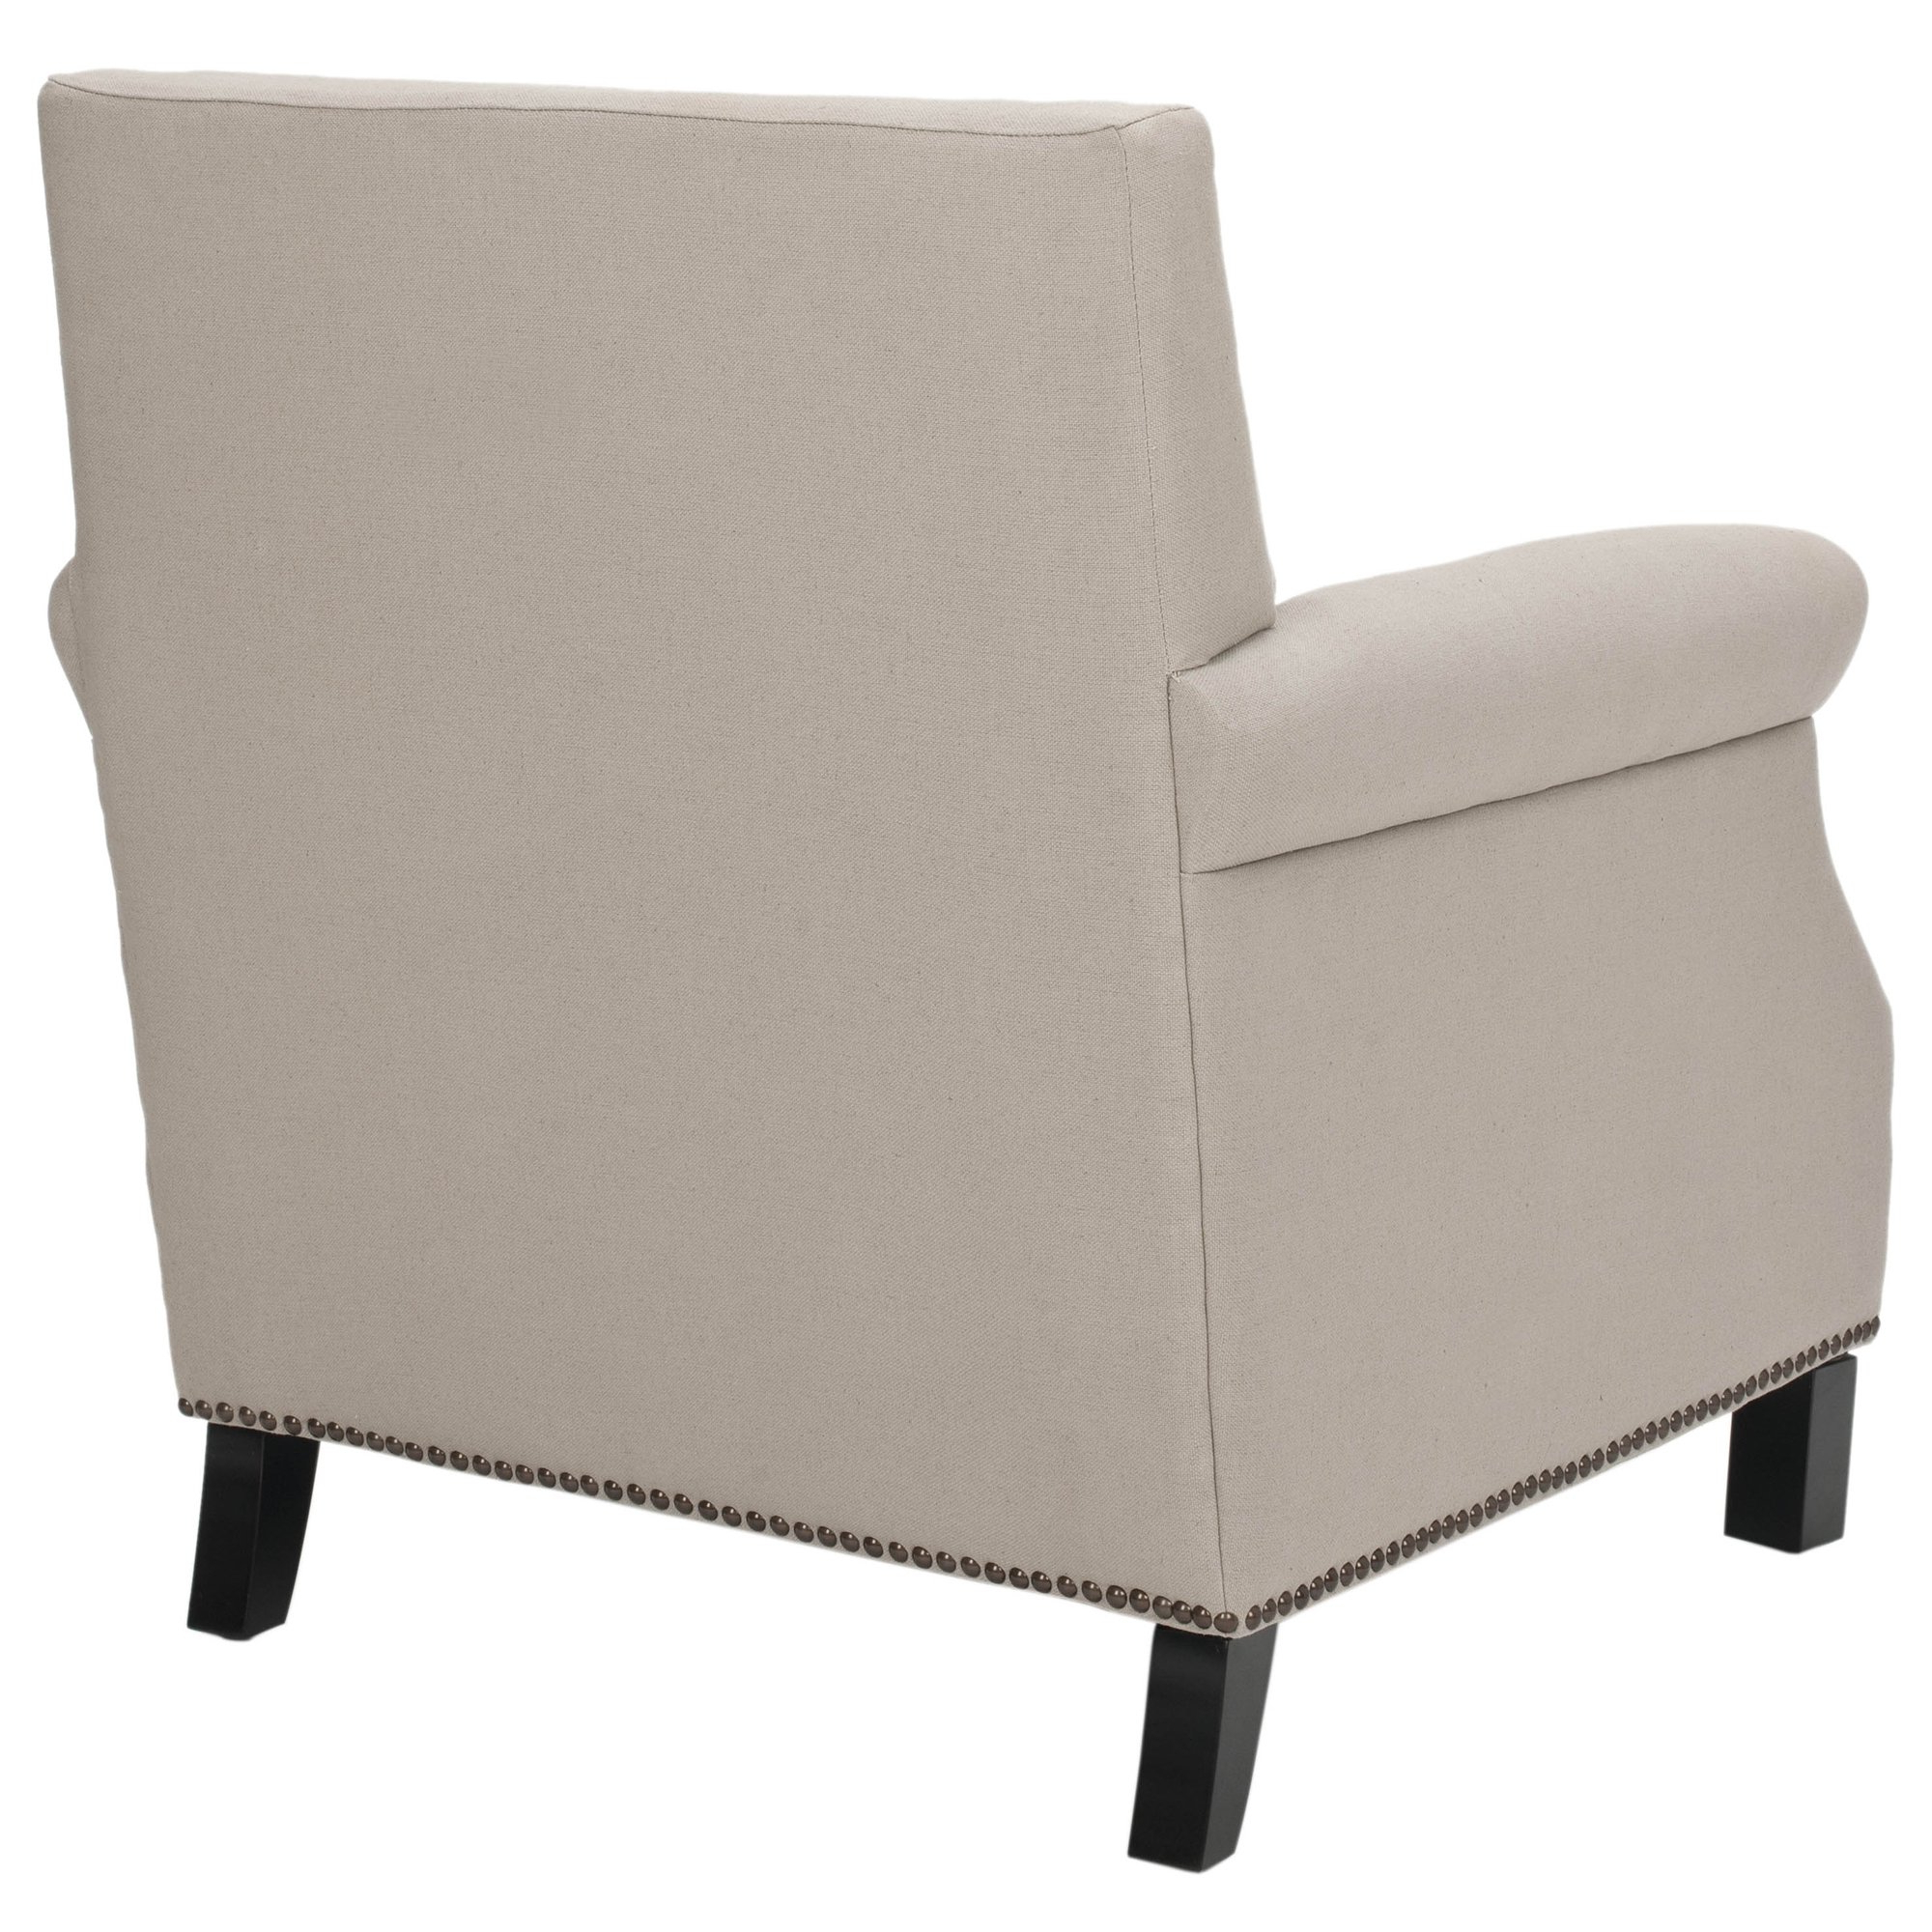 Shop Safavieh Mansfield Beige Club Chair – Free Shipping Today In Fashionable Mansfield Beige Linen Sofa Chairs (View 10 of 20)